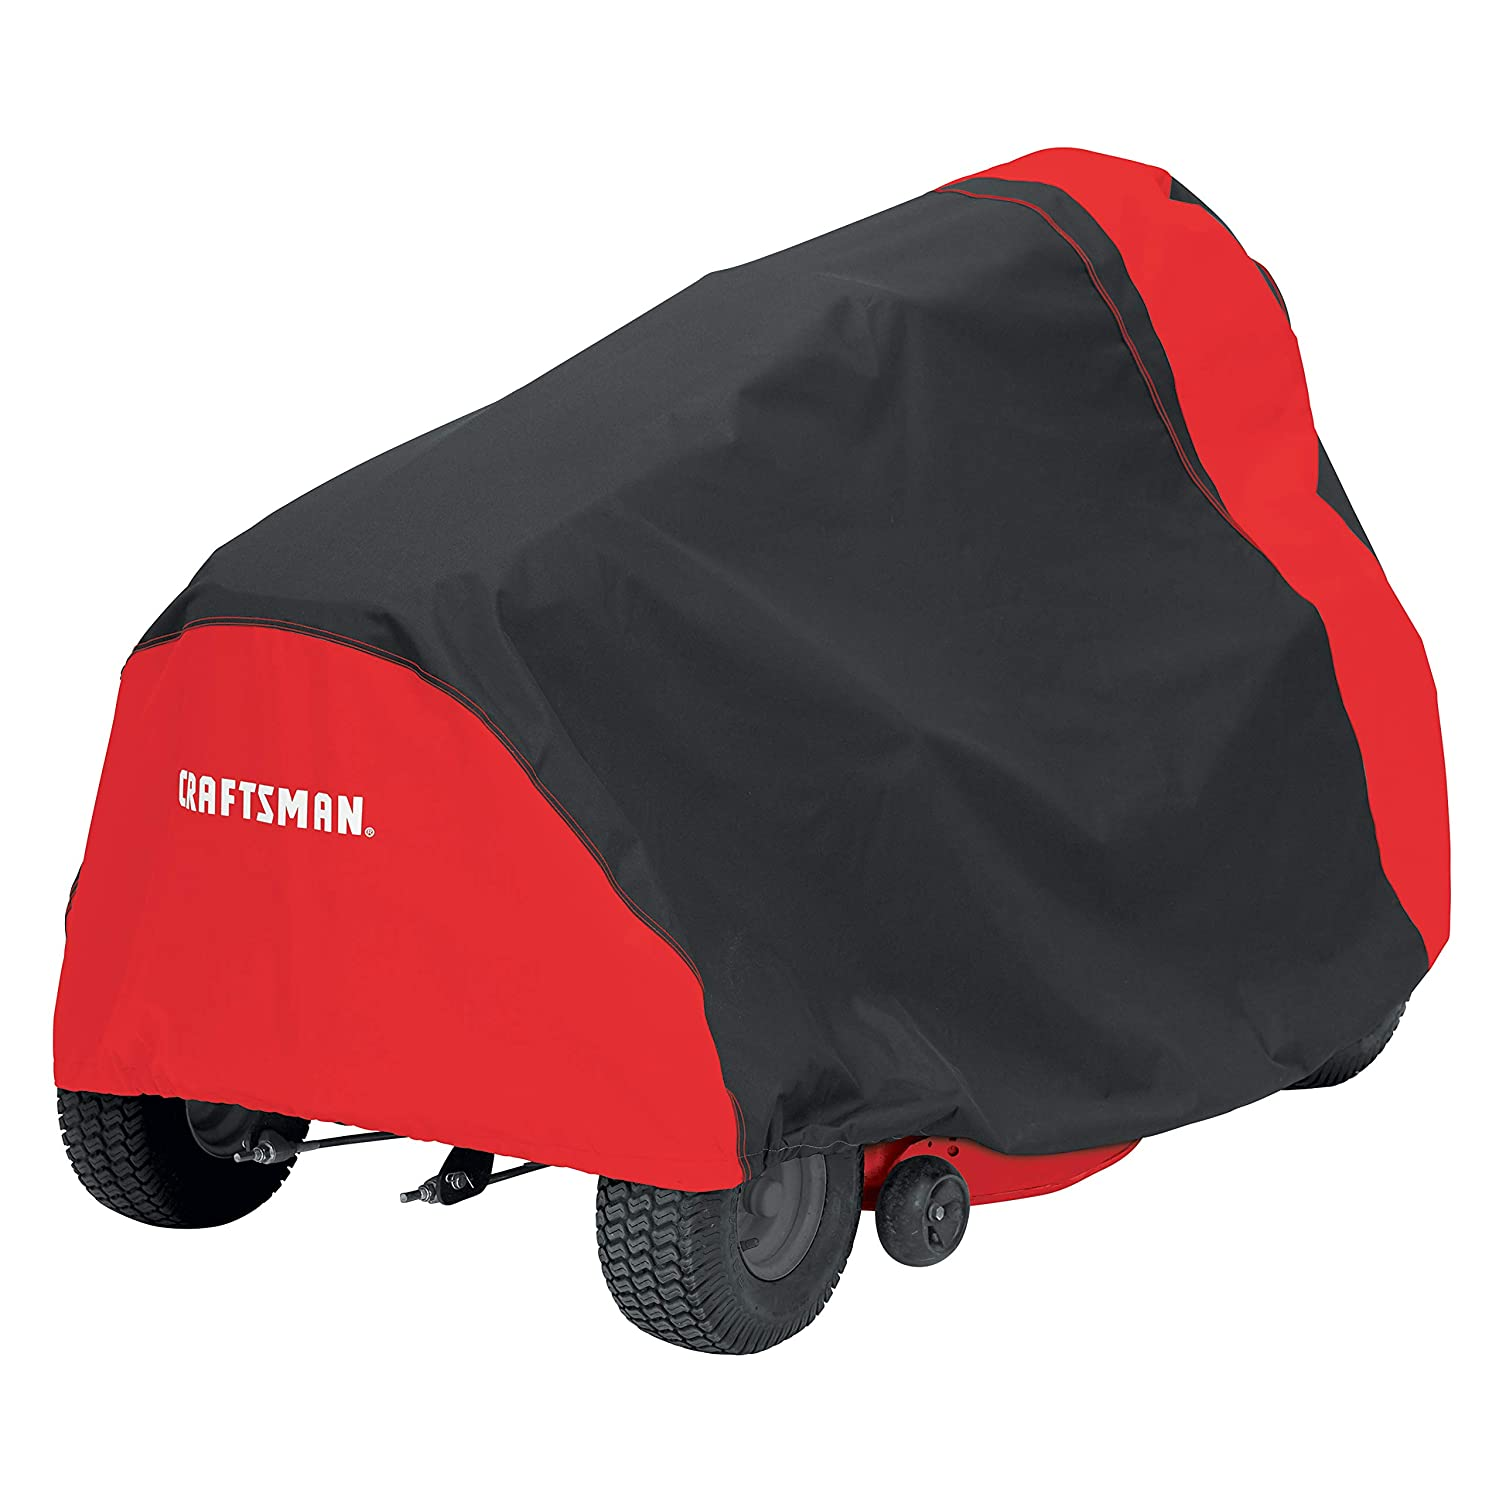 Craftsman Riding Lawn Mower Cover, Medium